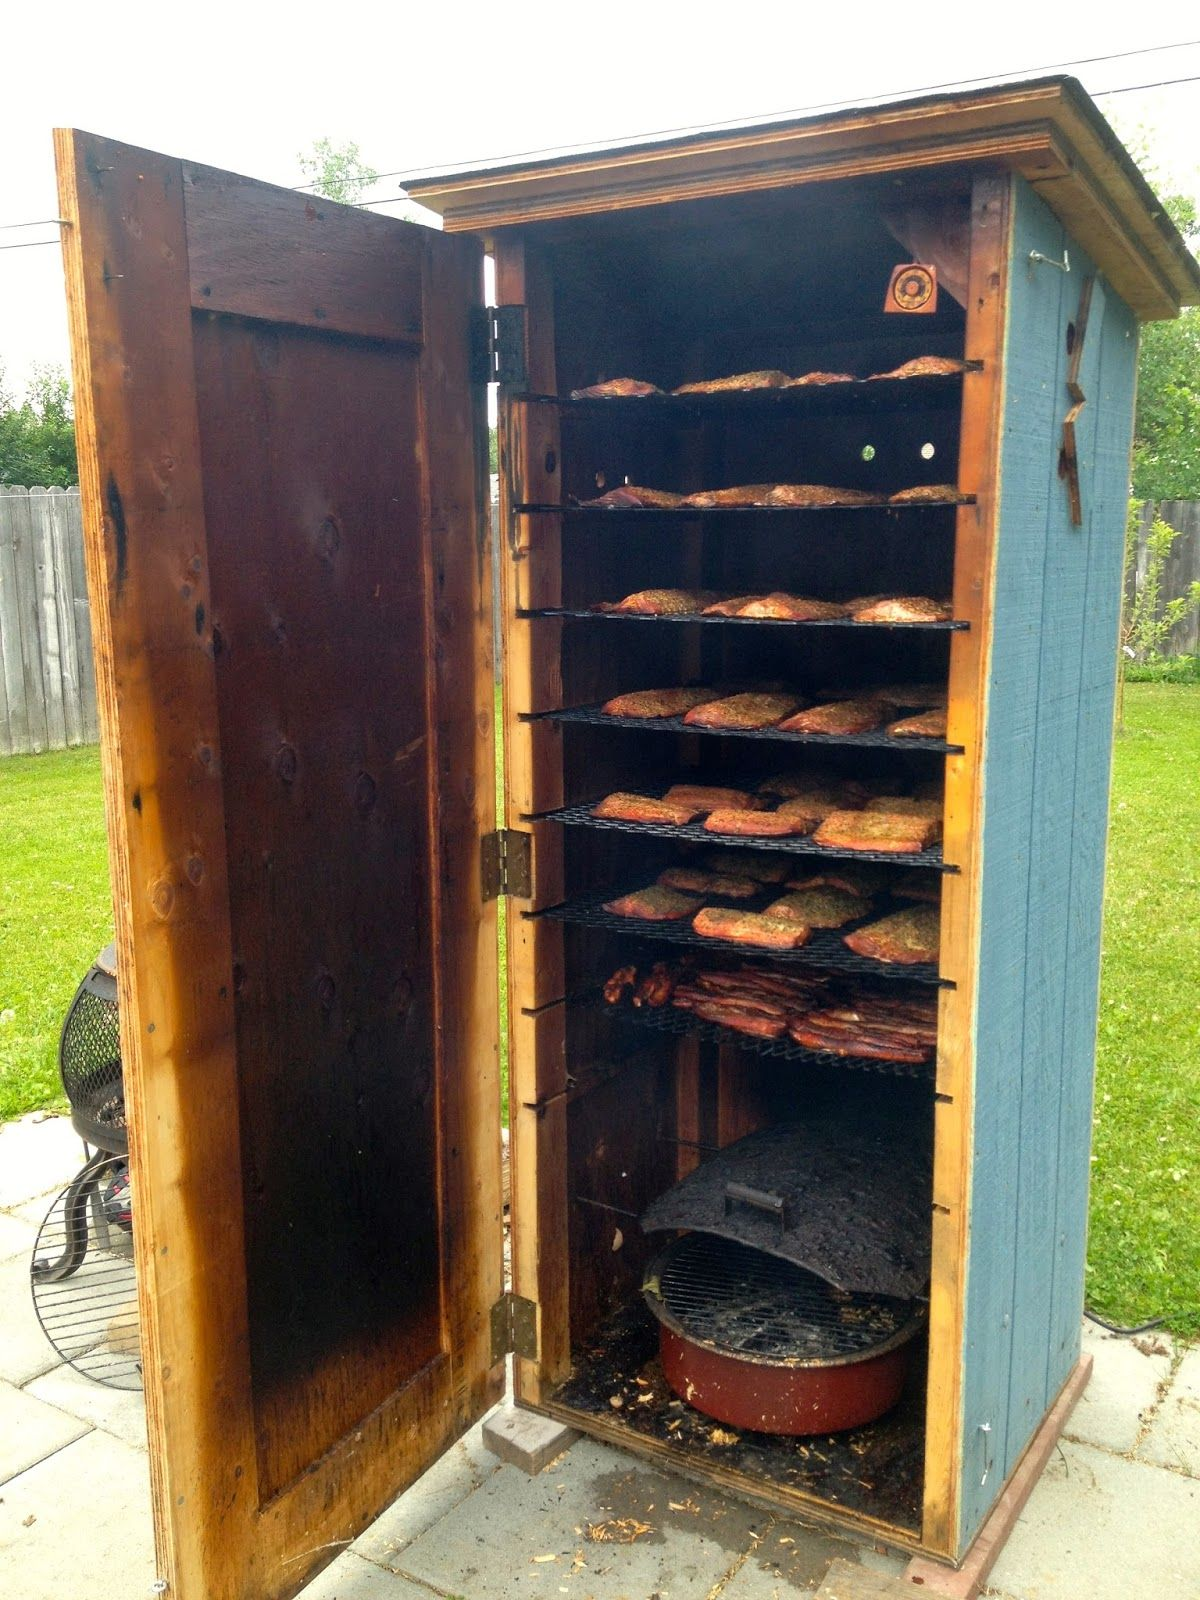 15 Homemade Smokers To Infuse Rich Flavor Into BBQ Meat Or Fish This Summer